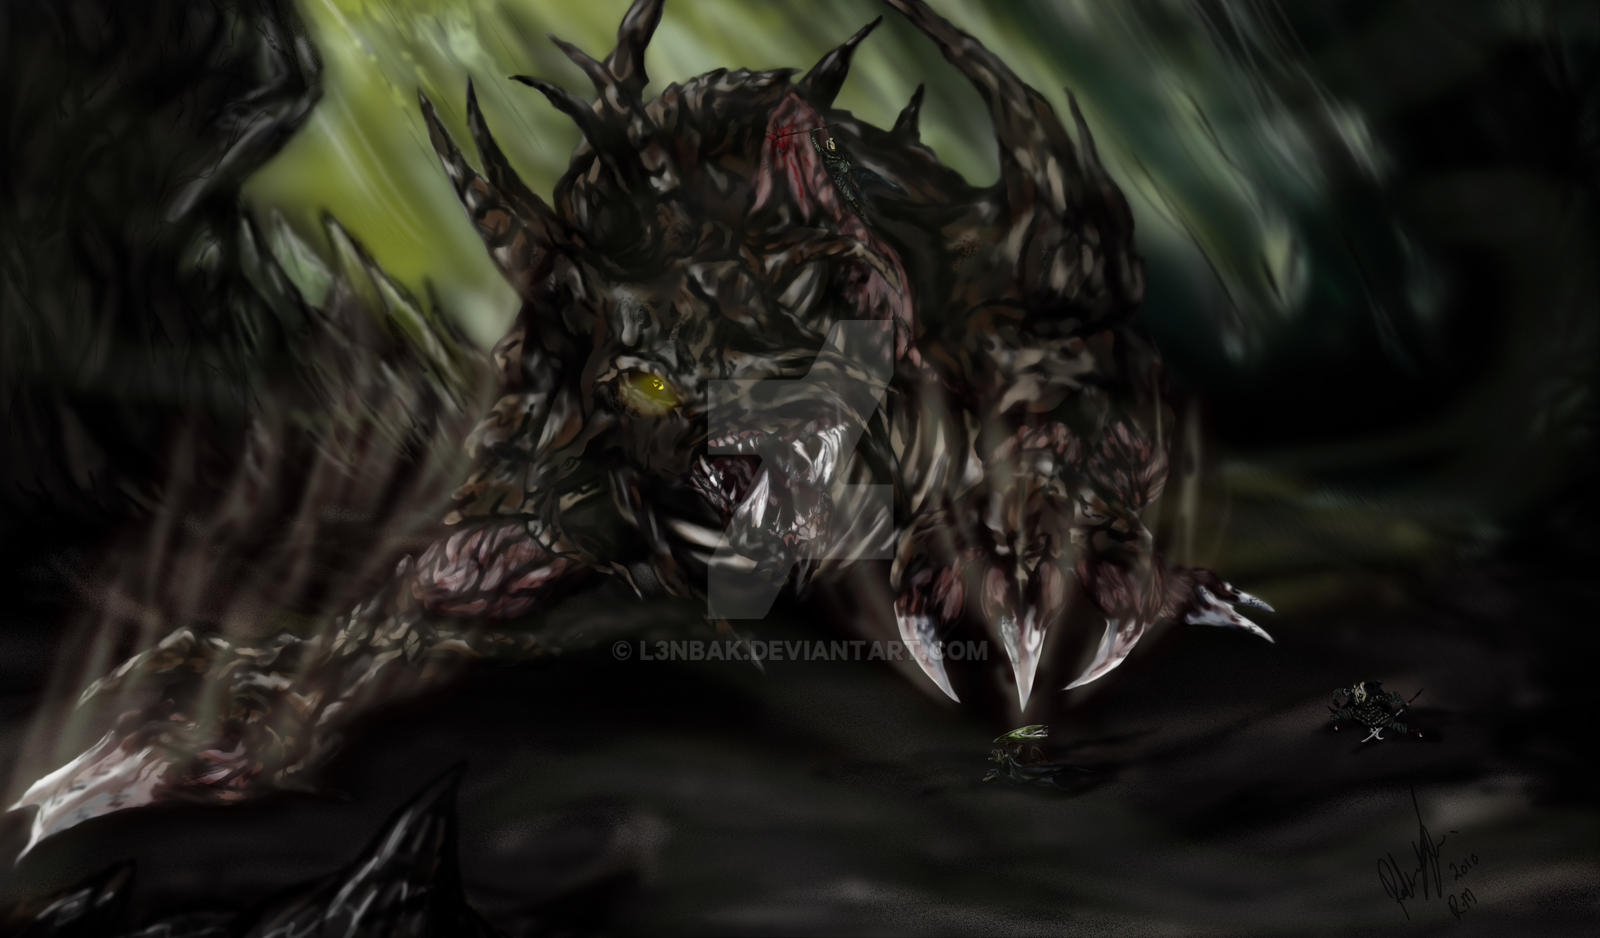 The corporeal beast hunt by l3nbak on deviantart